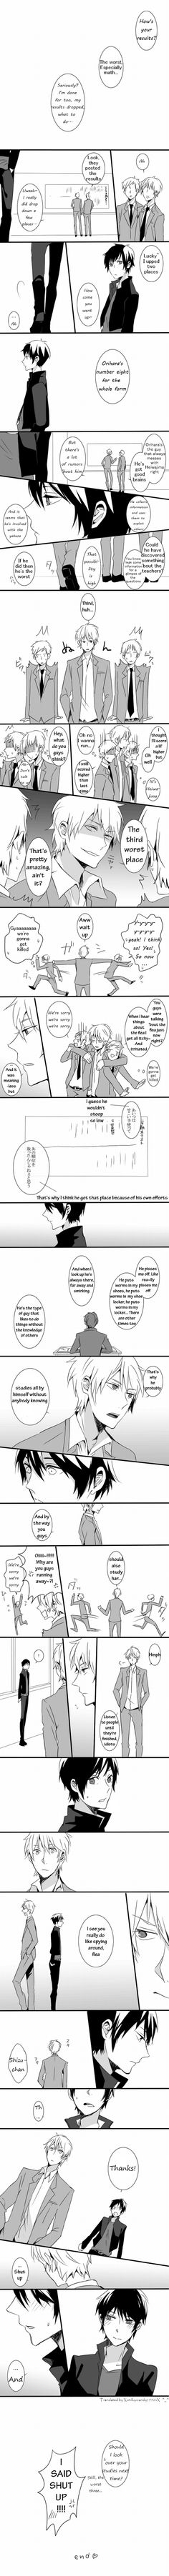 aww shizu-chan helping izaya AND DID I JUST SAW IZAYA OFFERING HELP TO SHIZU-CHAN